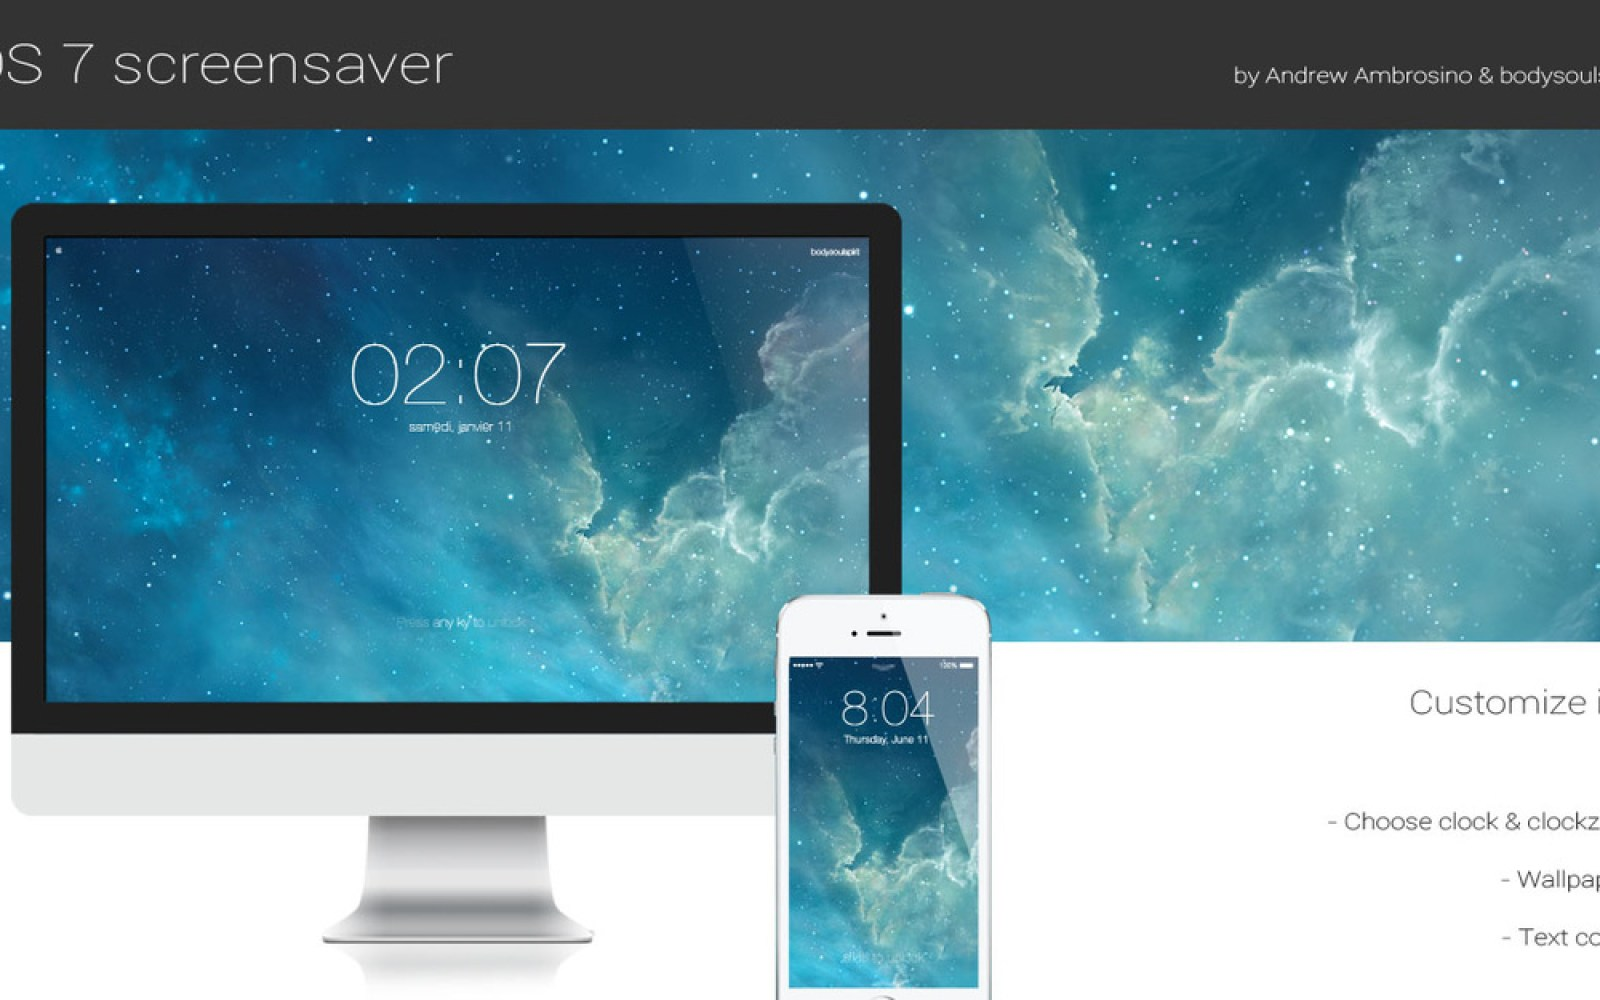 Stylish screensaver recreates the iOS 7 lock screen experience on your Mac